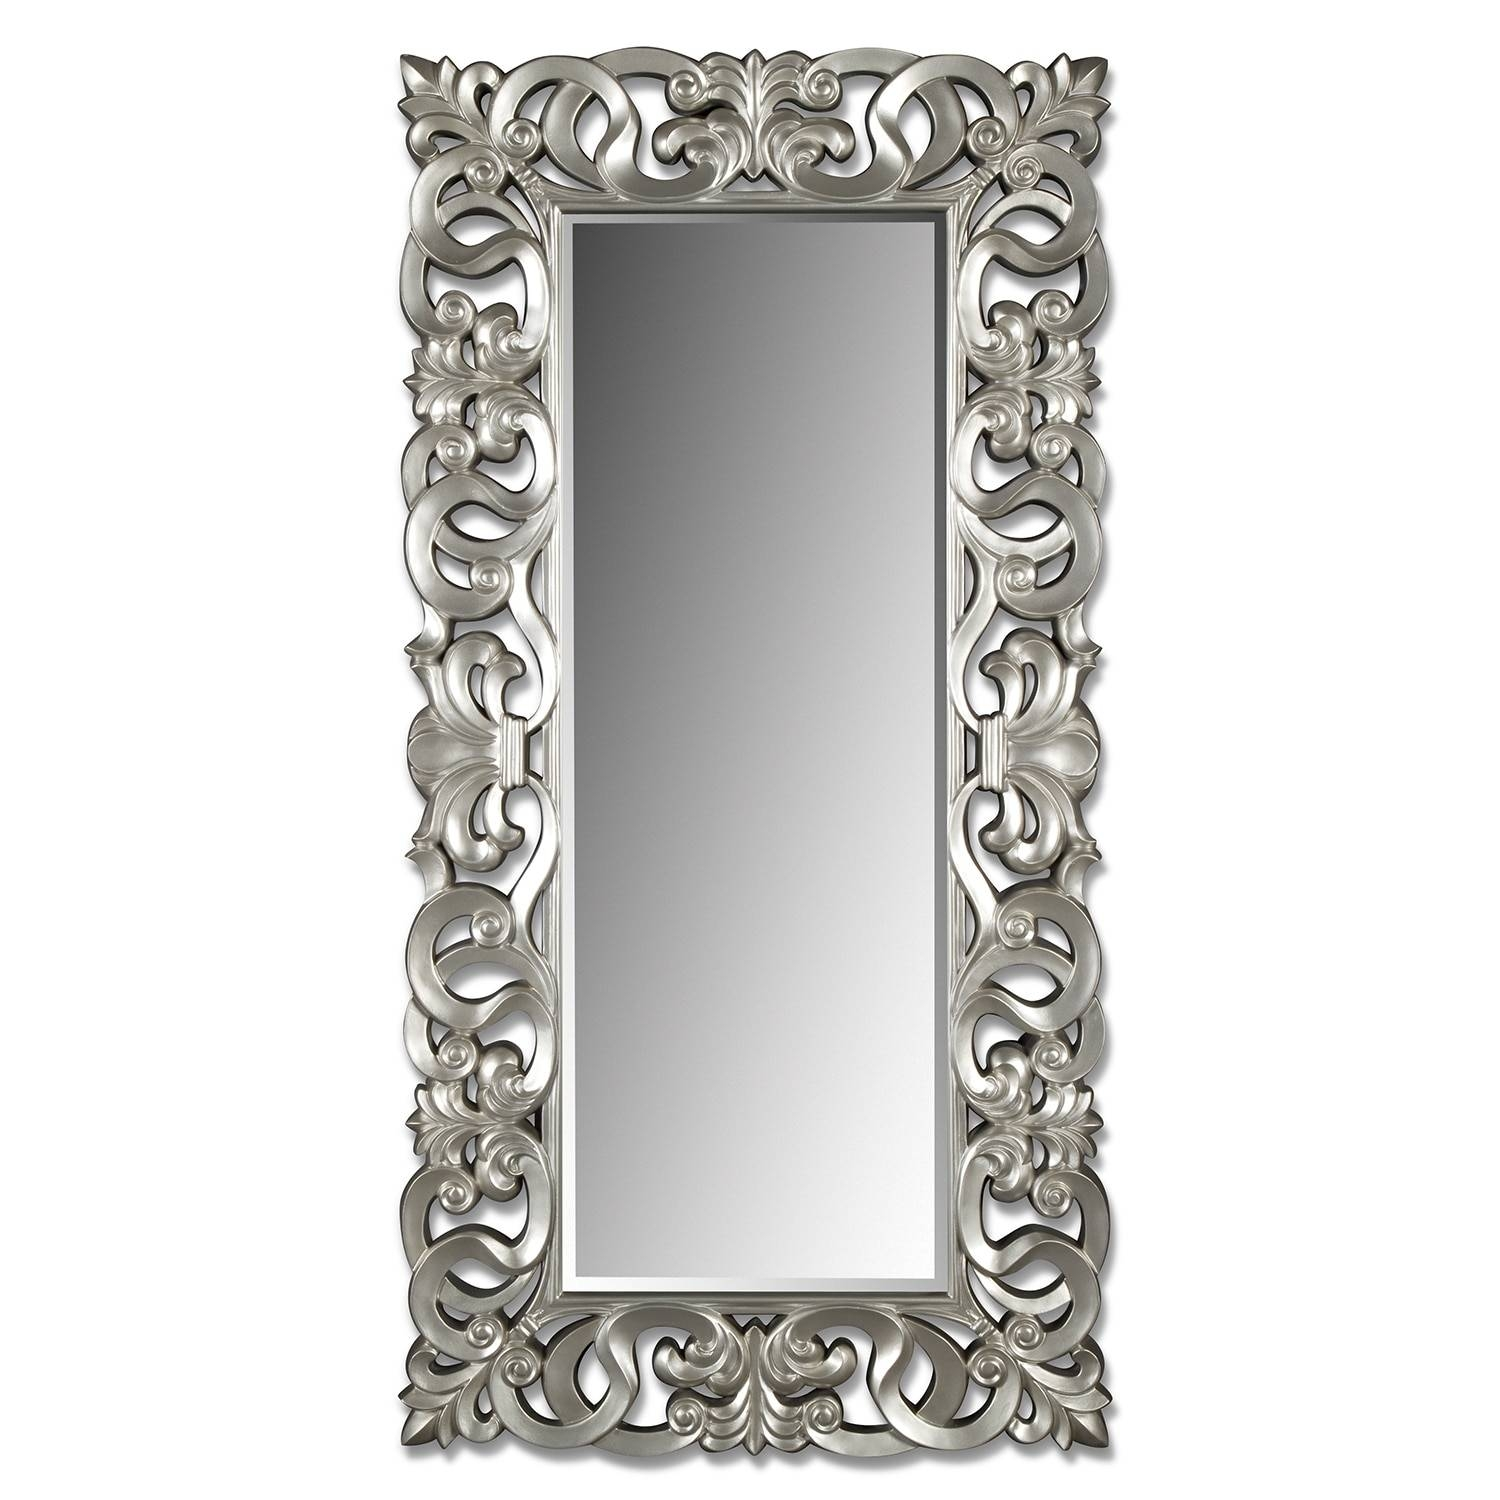 Wall & Floor Mirrors | Bedroom Accents | American Signature Furniture In Bling Floor Mirrors (View 14 of 15)